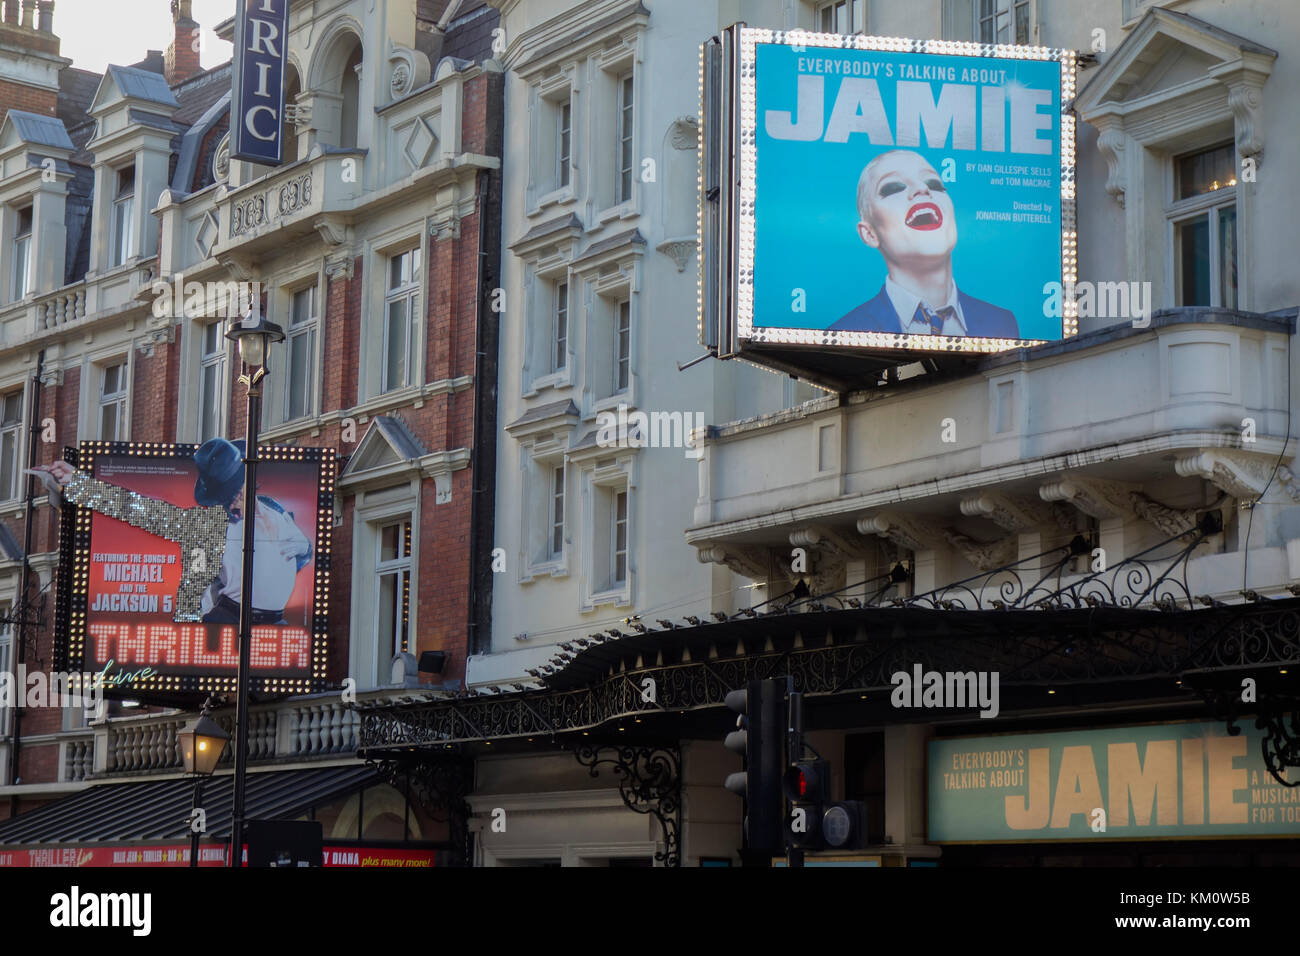 Theatre Signage at the Apollo Theatre on Shaftesbury Avenue in London's West end currently showing  Everybody's - Stock Image